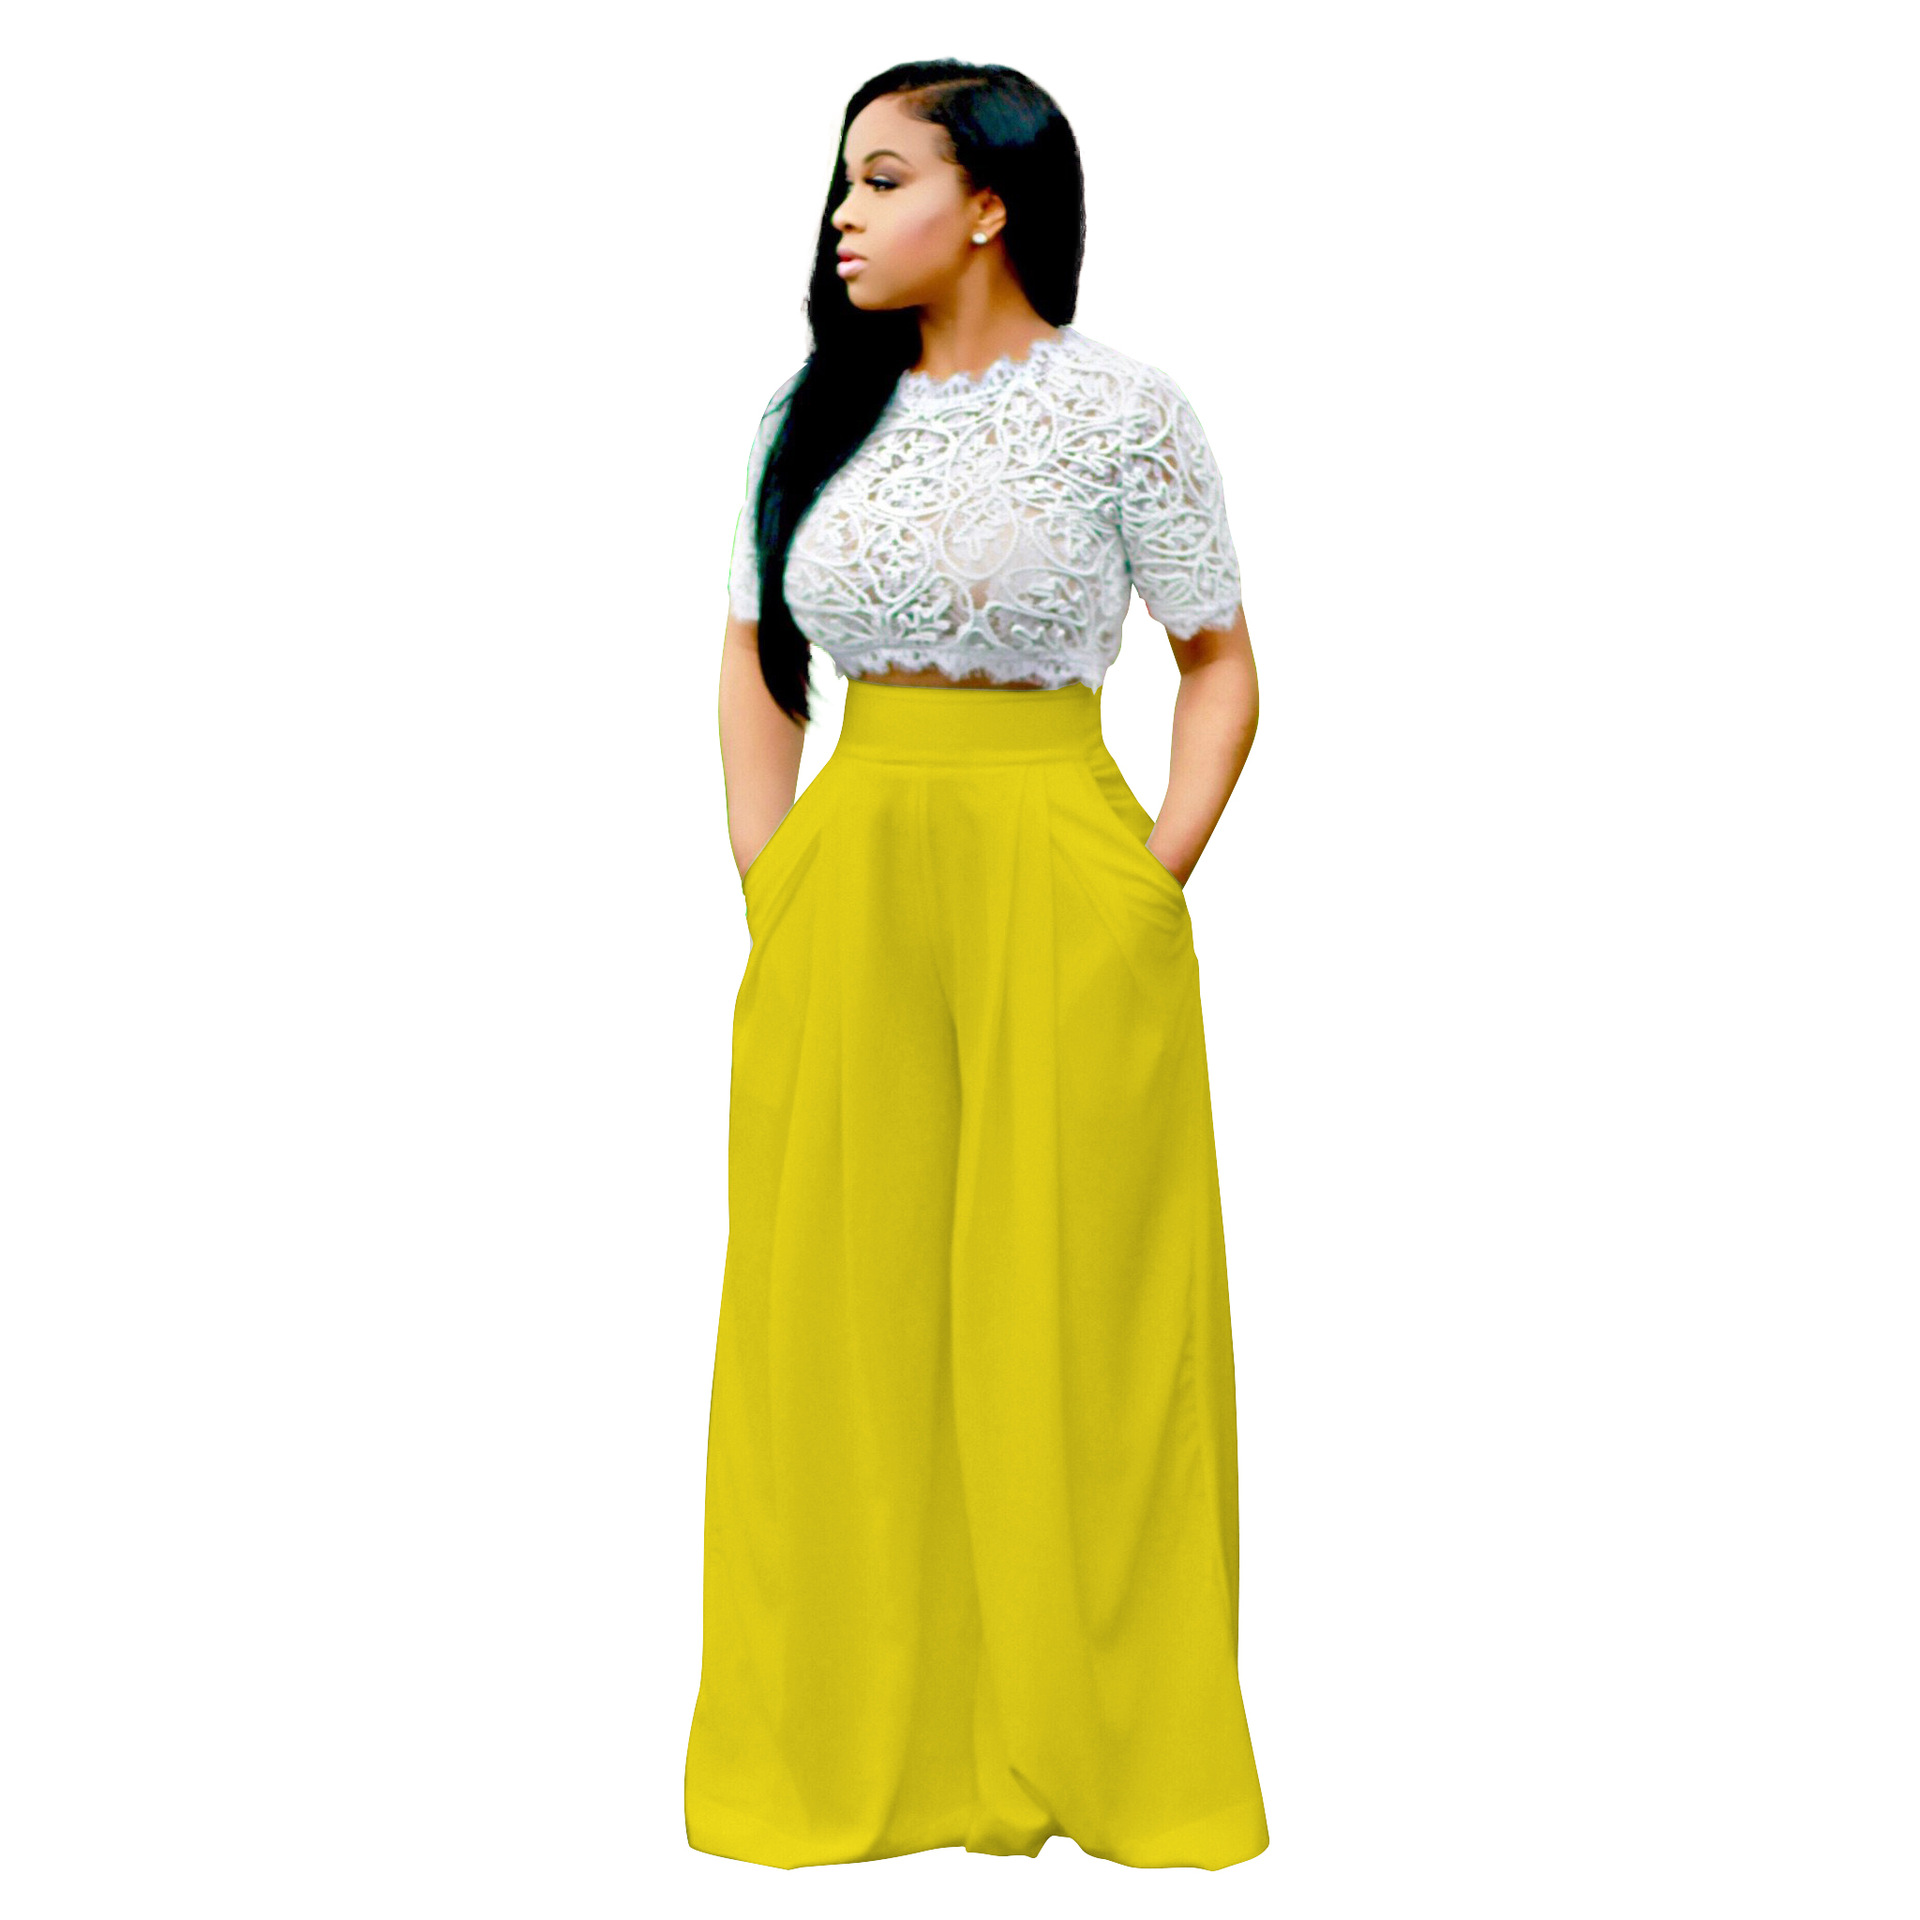 ANJAMANOR Summer Women Two Piece Set Fashion Outfits White Lace Short Sleeve Crop Top And Loose Wide Leg Pants Suit D48-AF47